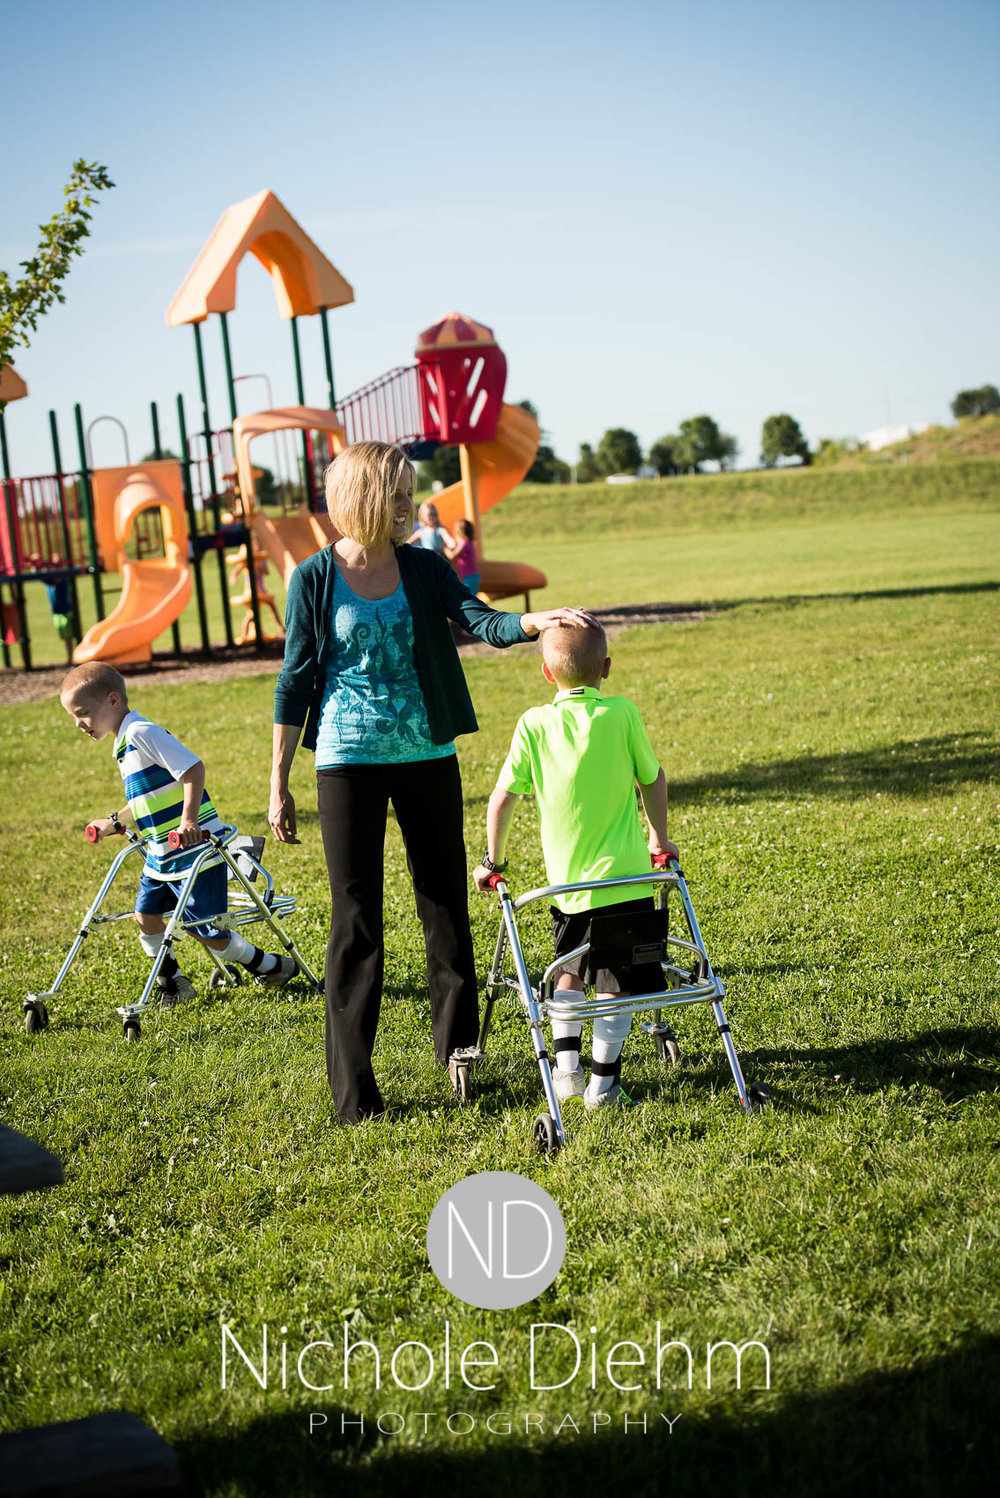 Cedar-Falls-Photographer-Nichole-Diehm-Events-100-women-who-care-beaus-beautiful-blessings-place-to-play-park-greenhill-villiage163.jpg